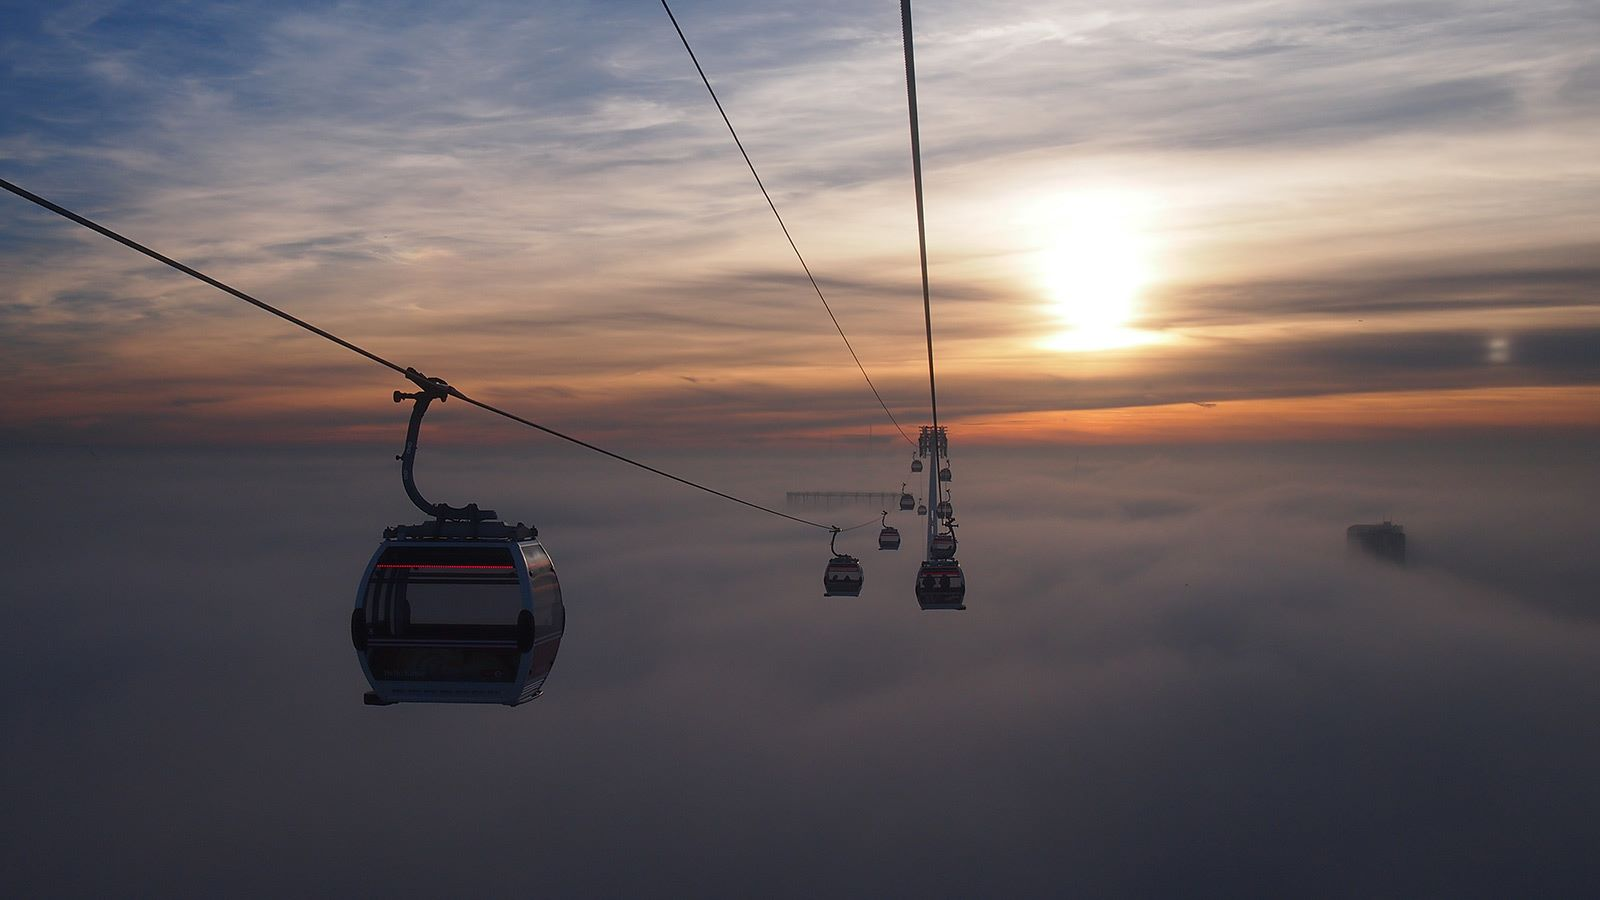 Emirates Air Line Cable Car Sky Aerial View - Mace Group